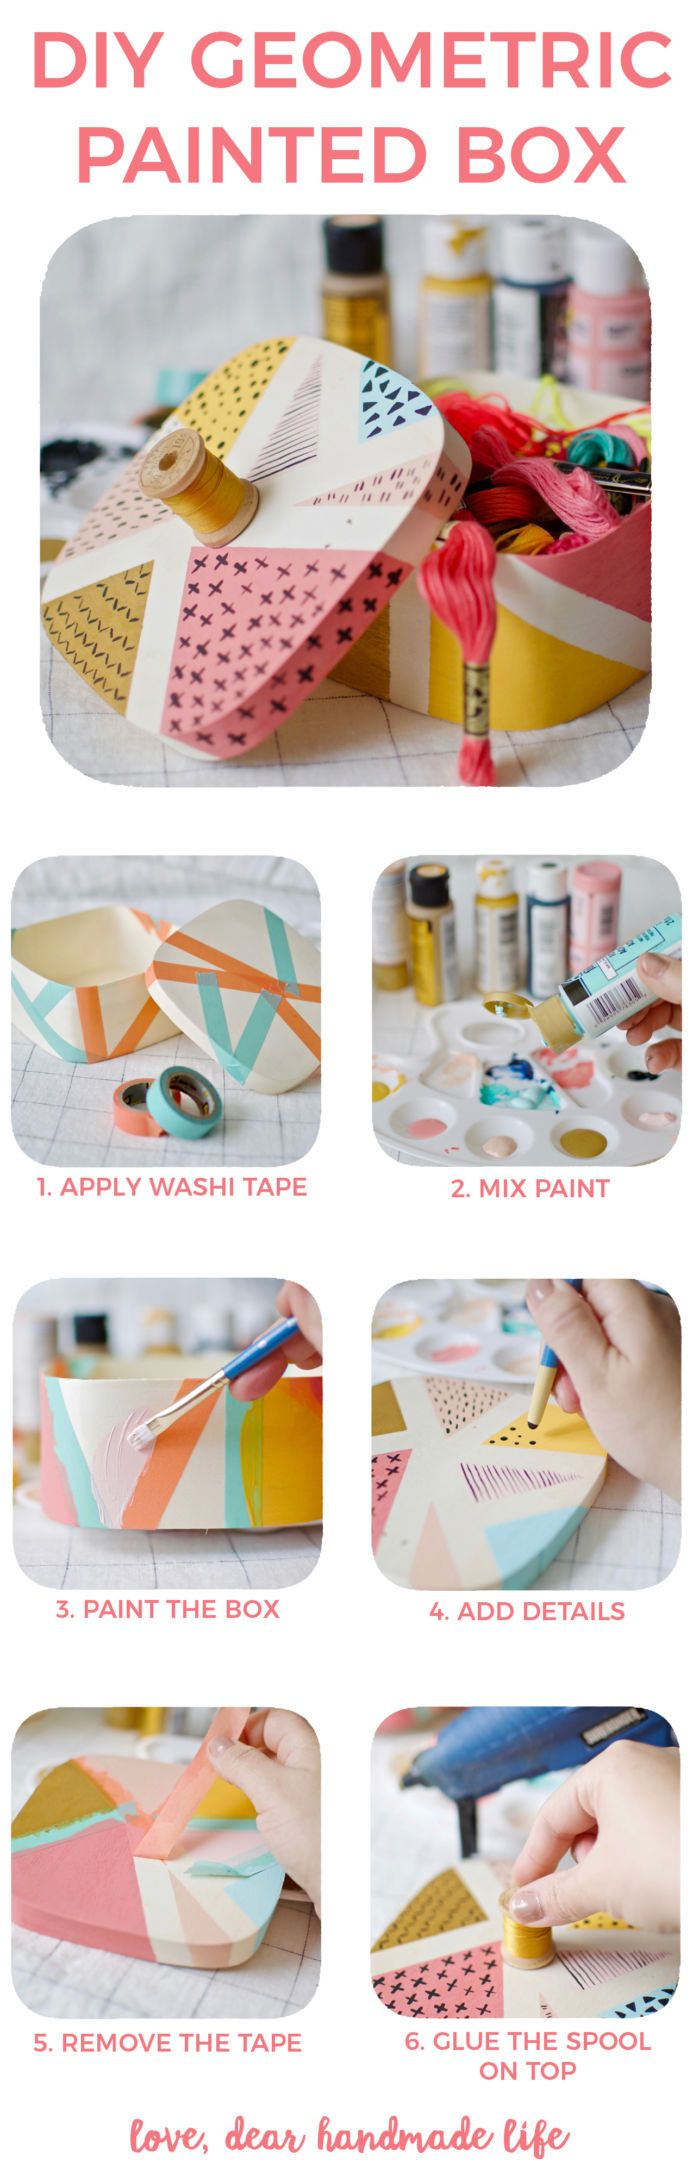 DIY Geometric Painted Wooden Box from Dear Handmade Life